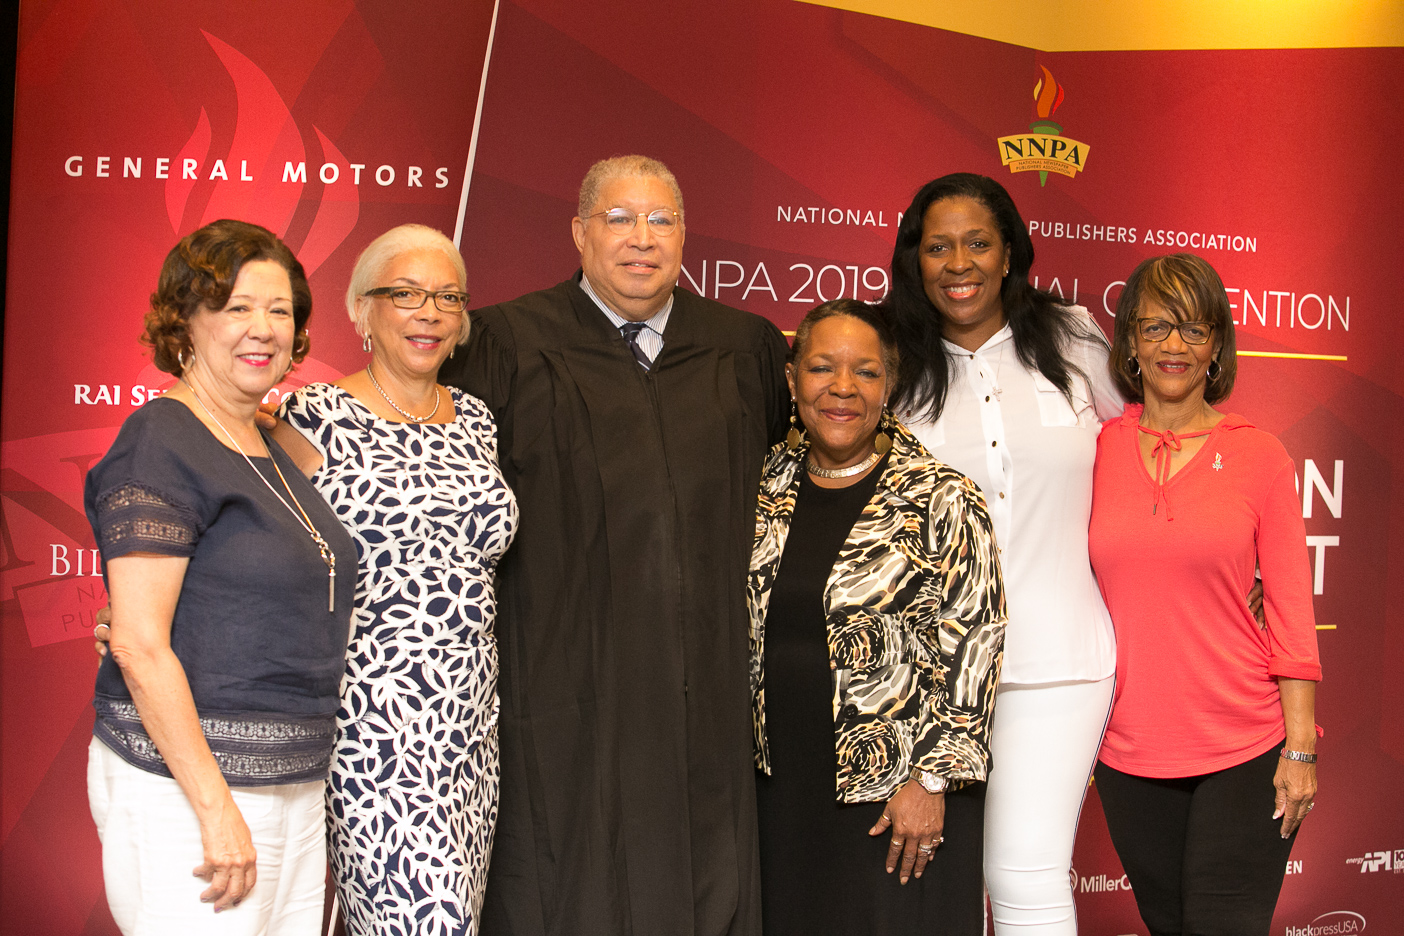 Newly elected NNPA Board Members following the ceremonial swearing in of new officers. (Pictured left to right: Treasurer Brenda Andrews, Publisher of the New Journal and Guide; 1st Vice Chair Janis Ware, Publisher of The Atlanta Voice; Judge Tyrone K. Yates, who officiated the swearing in of officers; 2nd Vice Chair, Fran Farrer, Publisher of The County News; Chair of the NNPA, Karen Carter Richards, Publisher of the Houston Forward Times; Secretary: Jackie Hampton, Publisher of The Mississippi Link